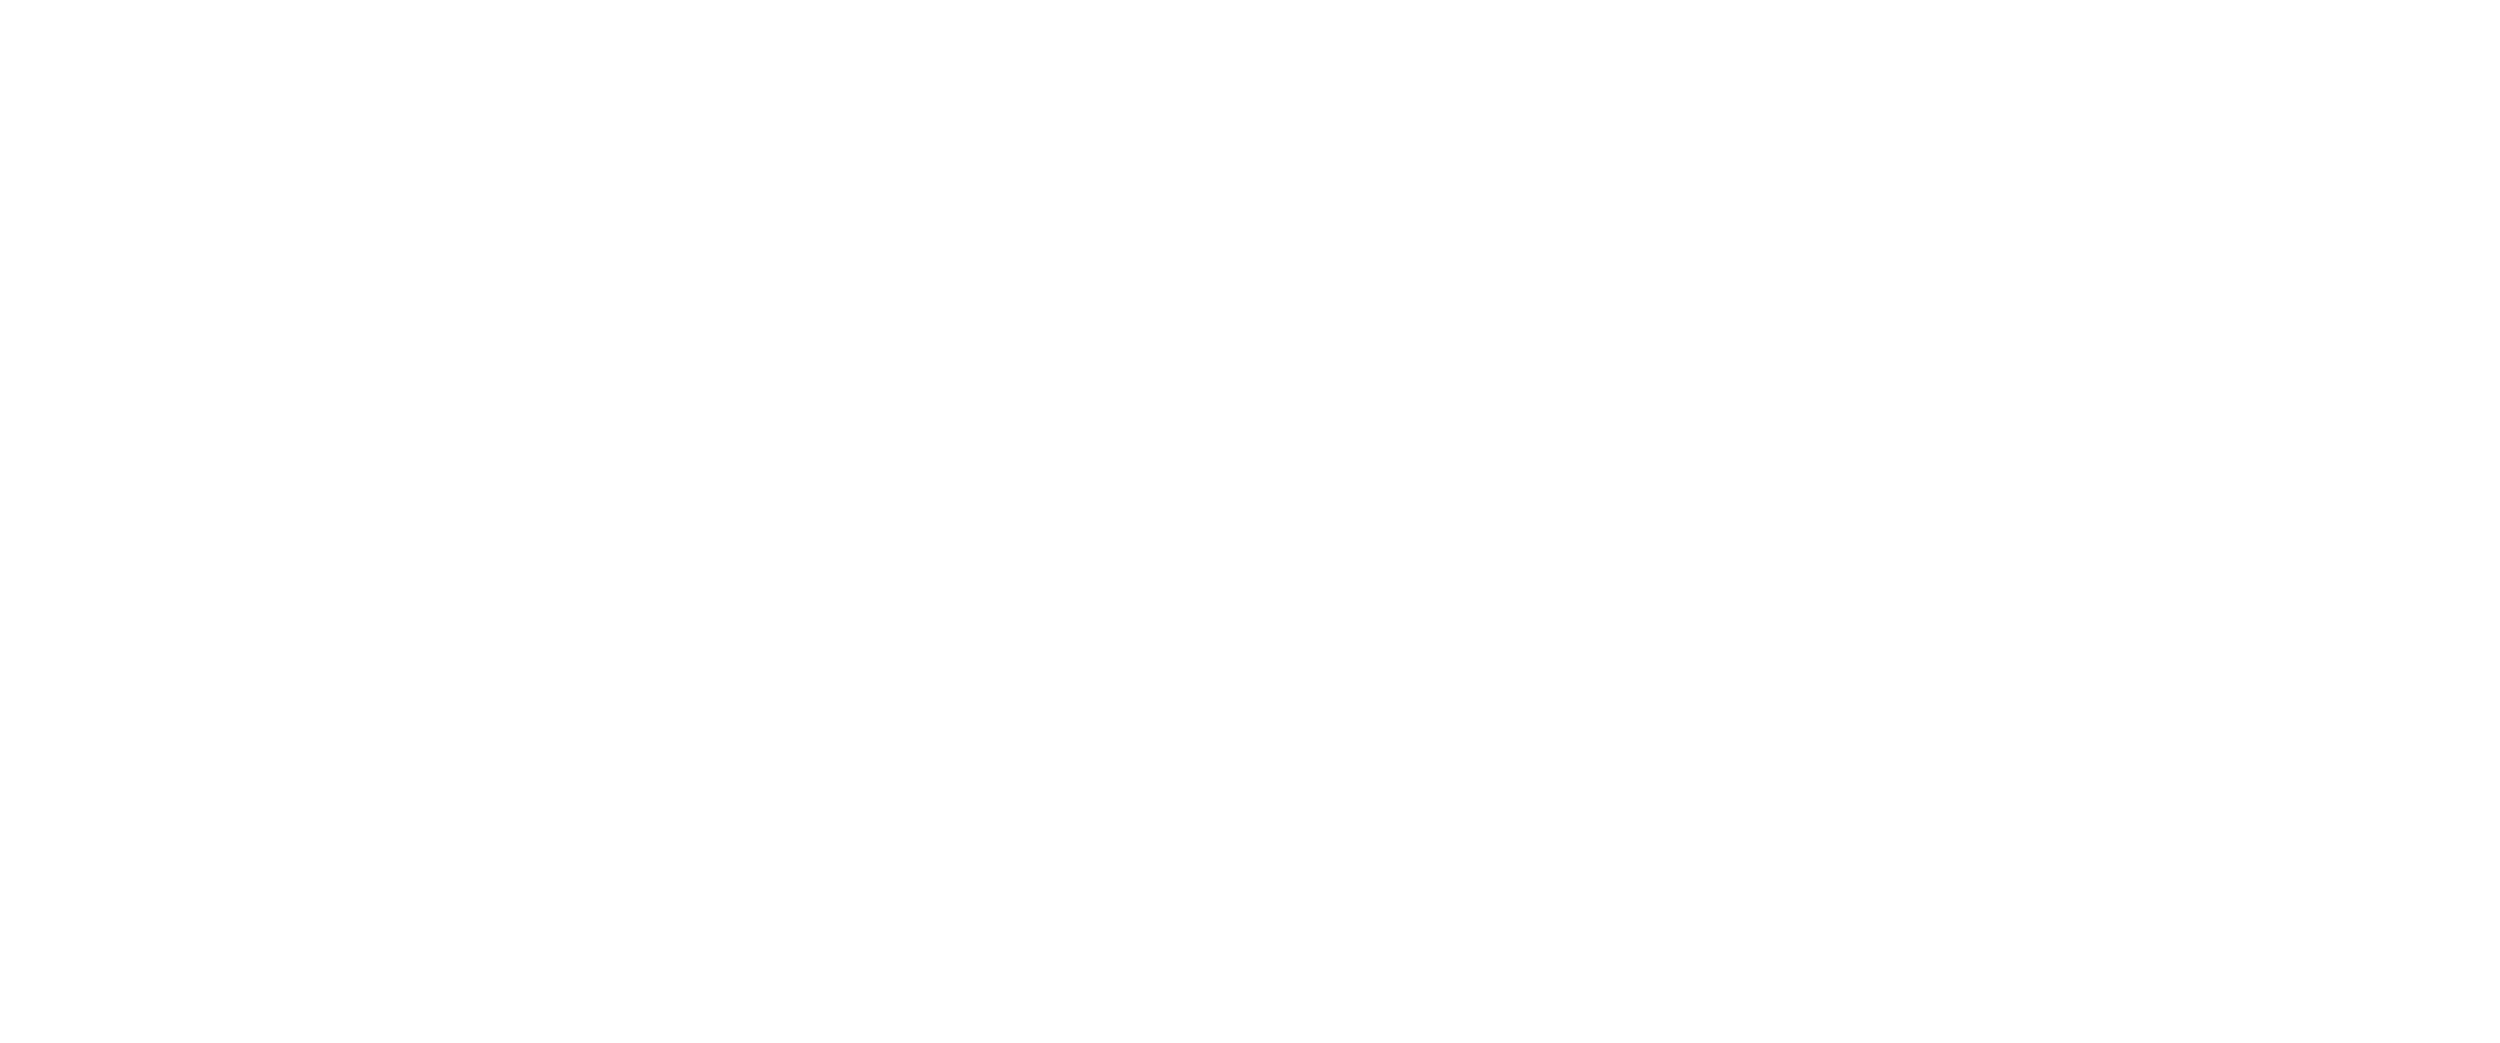 PLACE-residential-icon-white.png